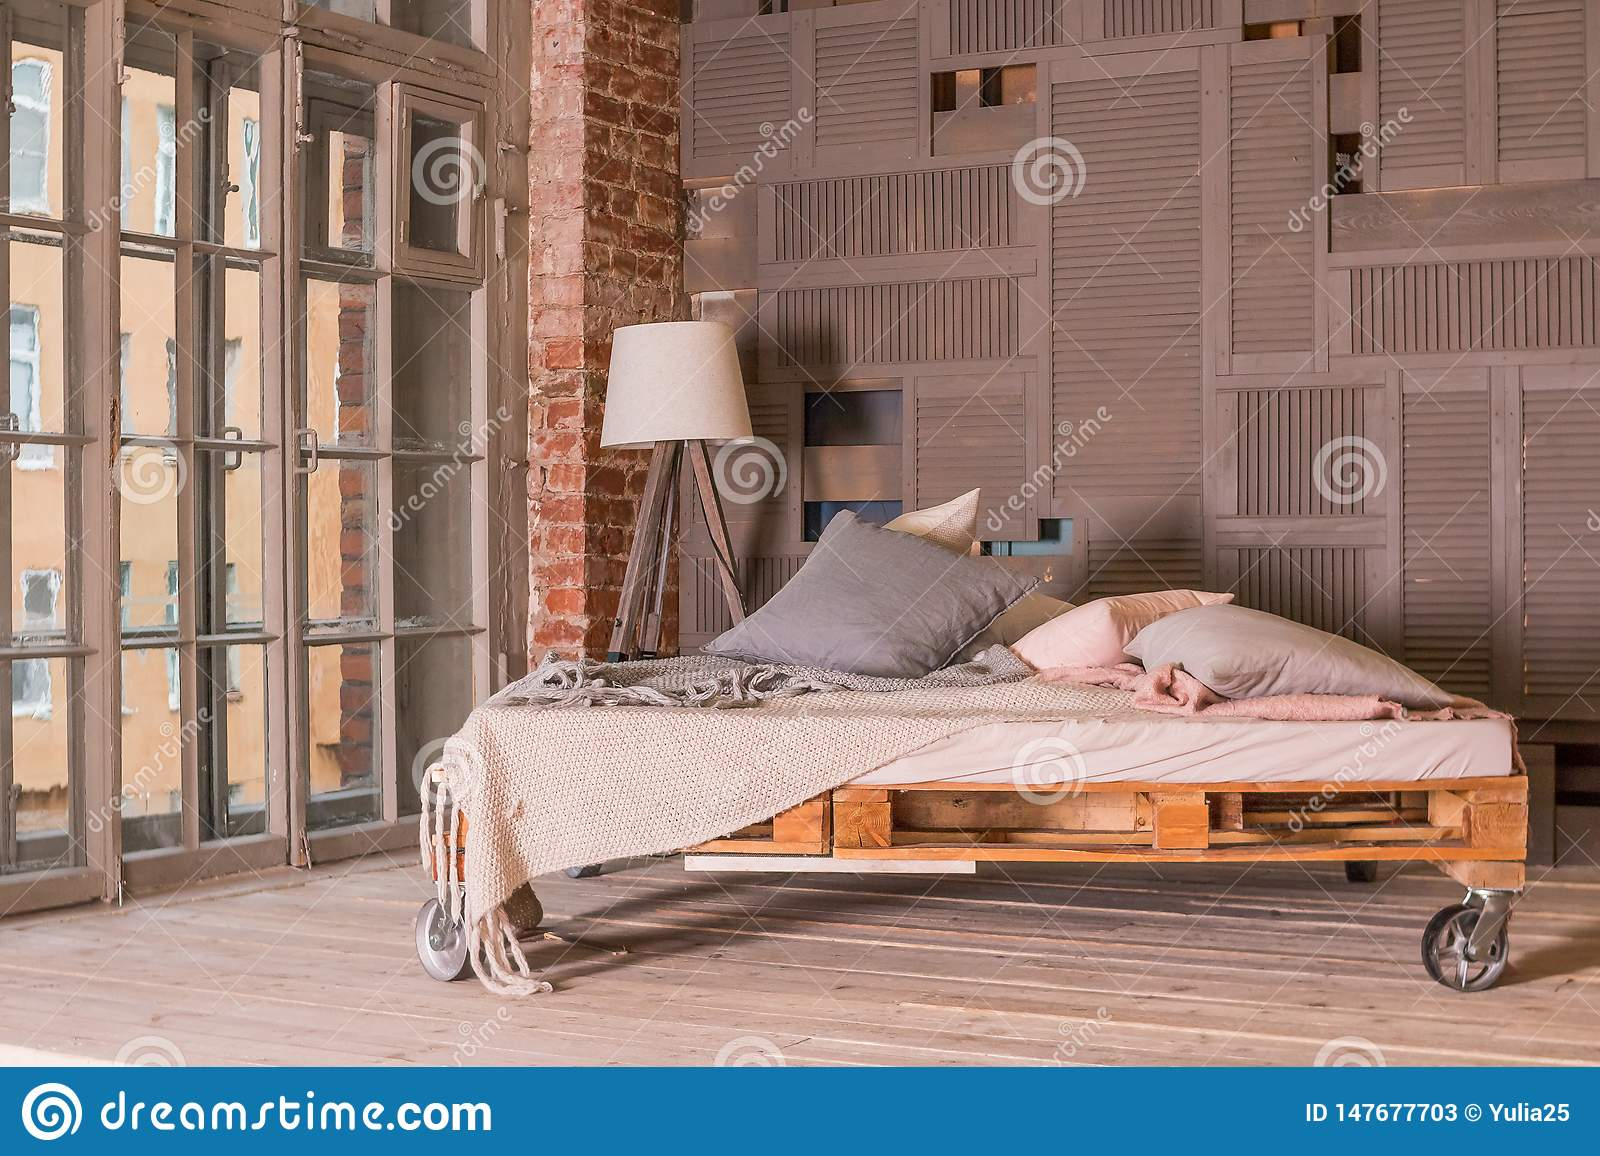 Loft Apartment Interior Minimalist Interior With Simple Wooden Bed Lamp Big Window Stylish Bedroom In Loft Style Stock Image Image Of Creativity Loft 147677703